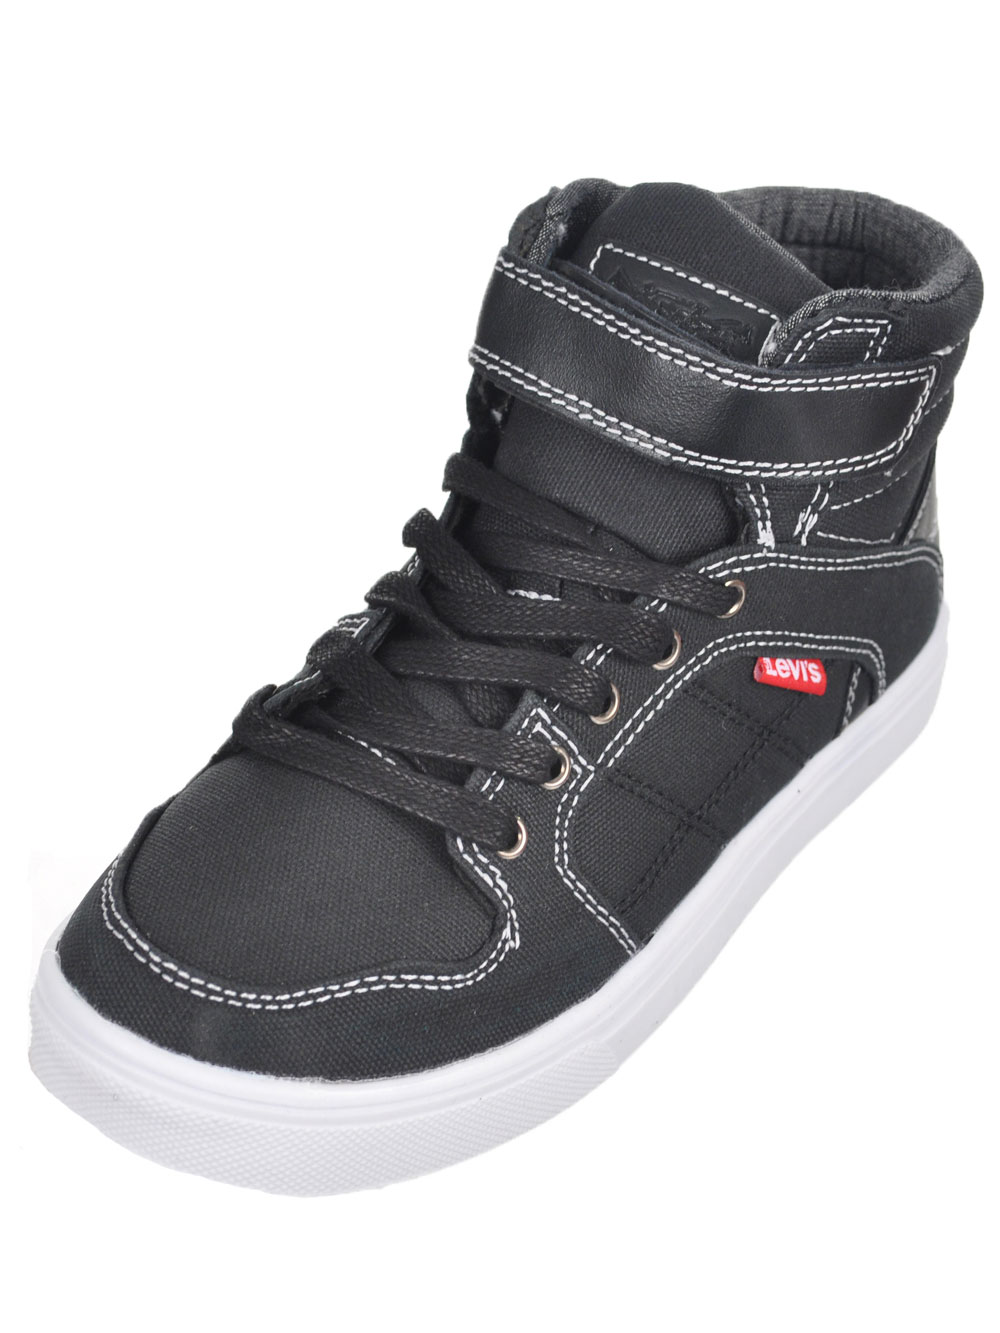 "Levi's Boys' ""Oakley"" Hi-Top Sneakers (Youth Sizes 13 - 3) - black, 13 youth"